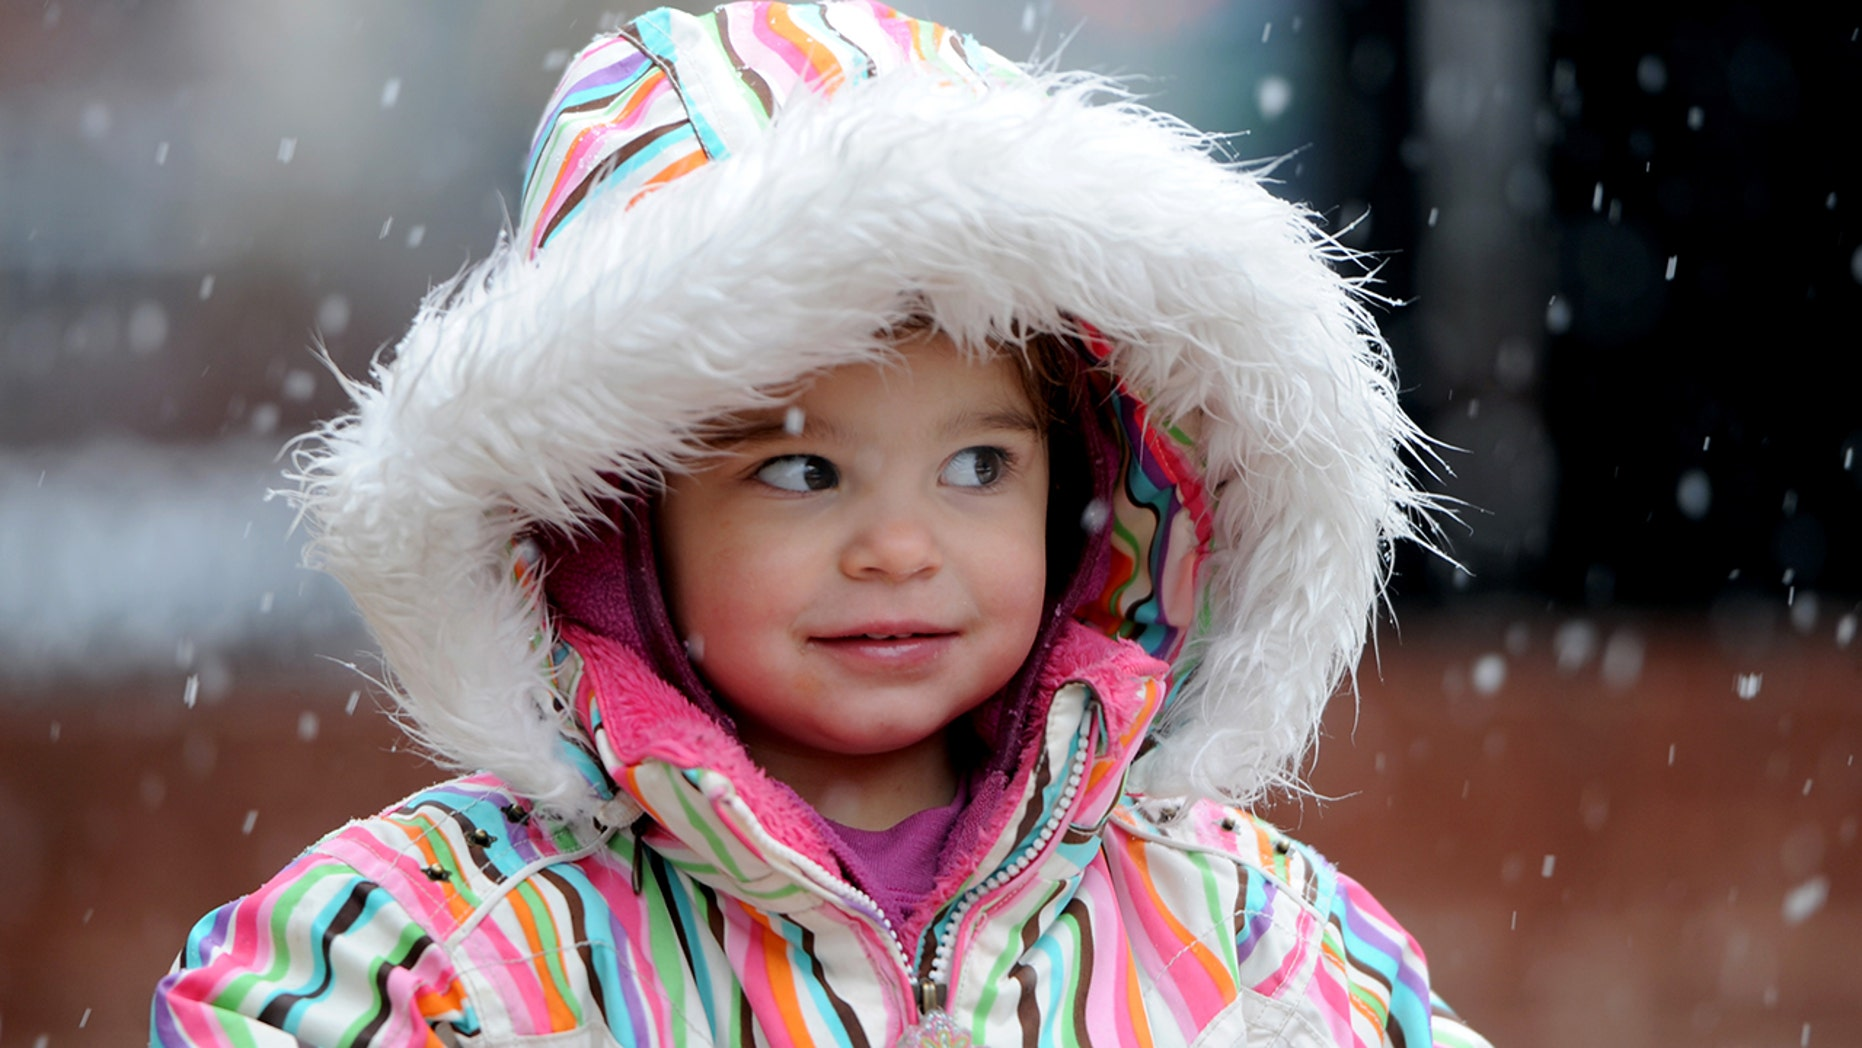 Mila Makovec, pictured at age 2, was diagnosed with Batten disease at age 6.